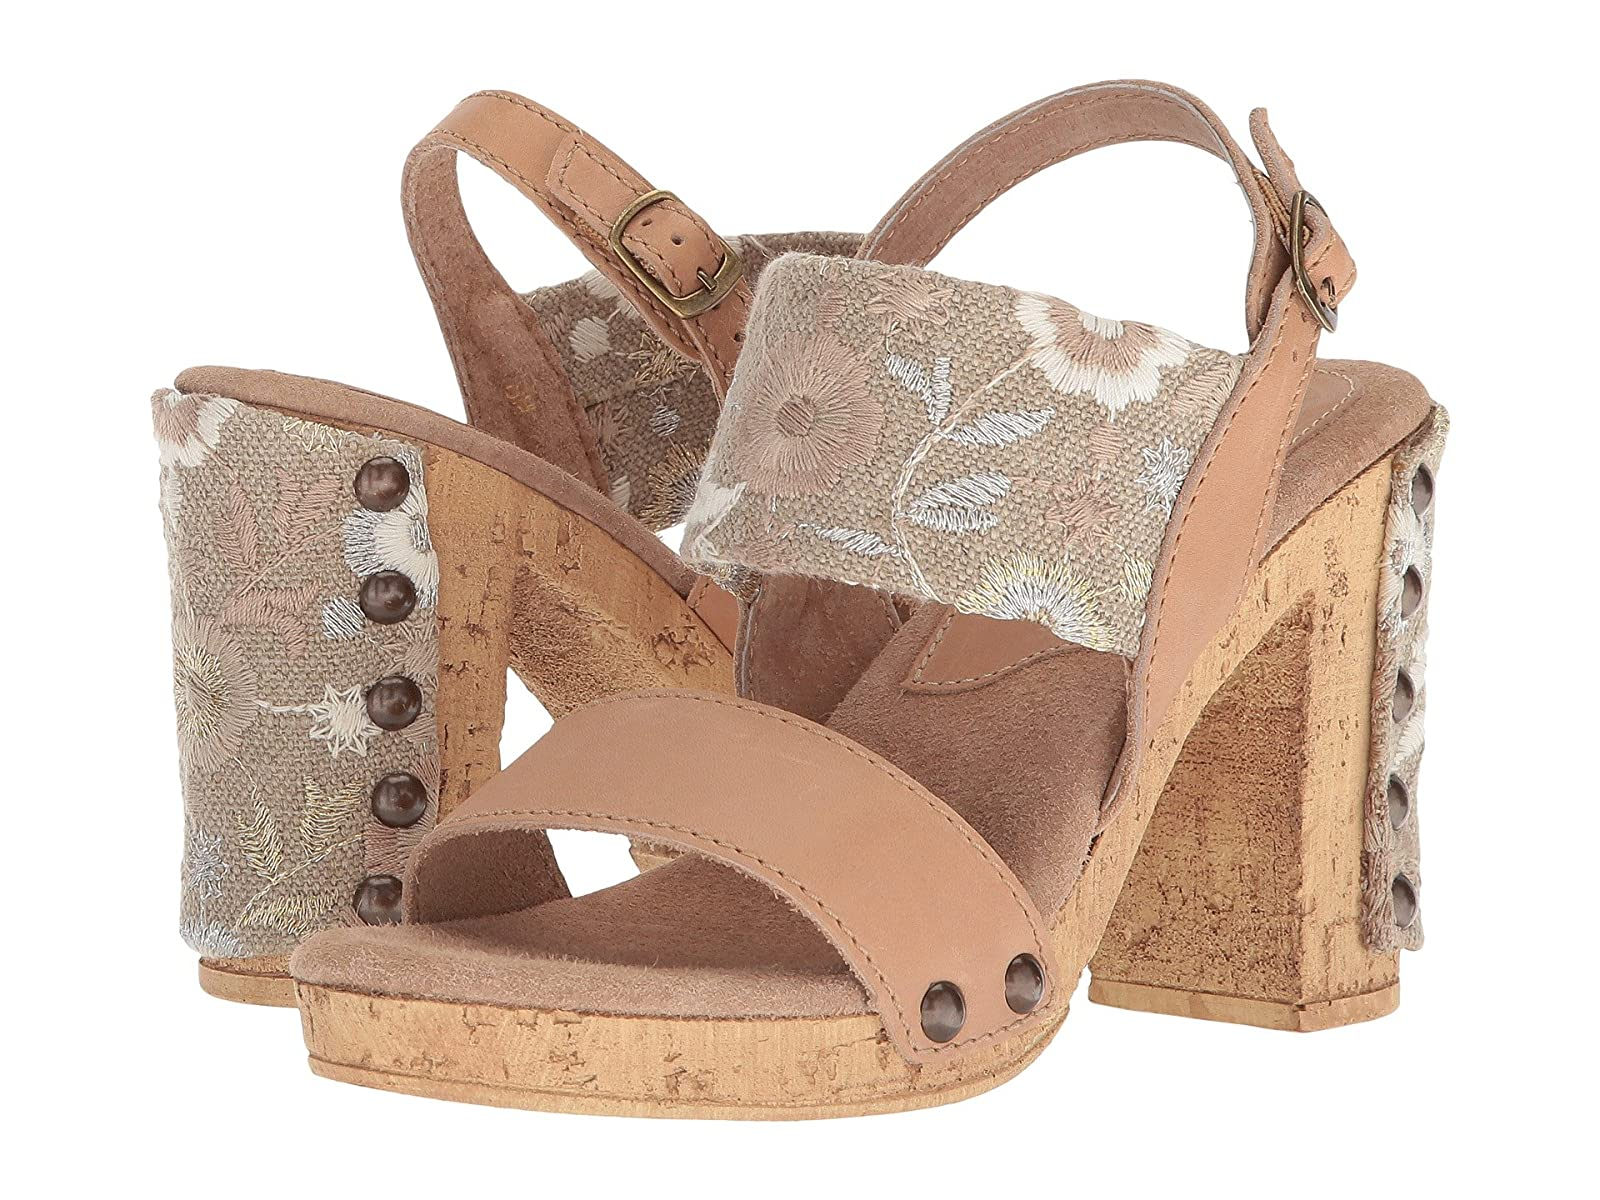 Sbicca MonumentalCheap and distinctive eye-catching shoes